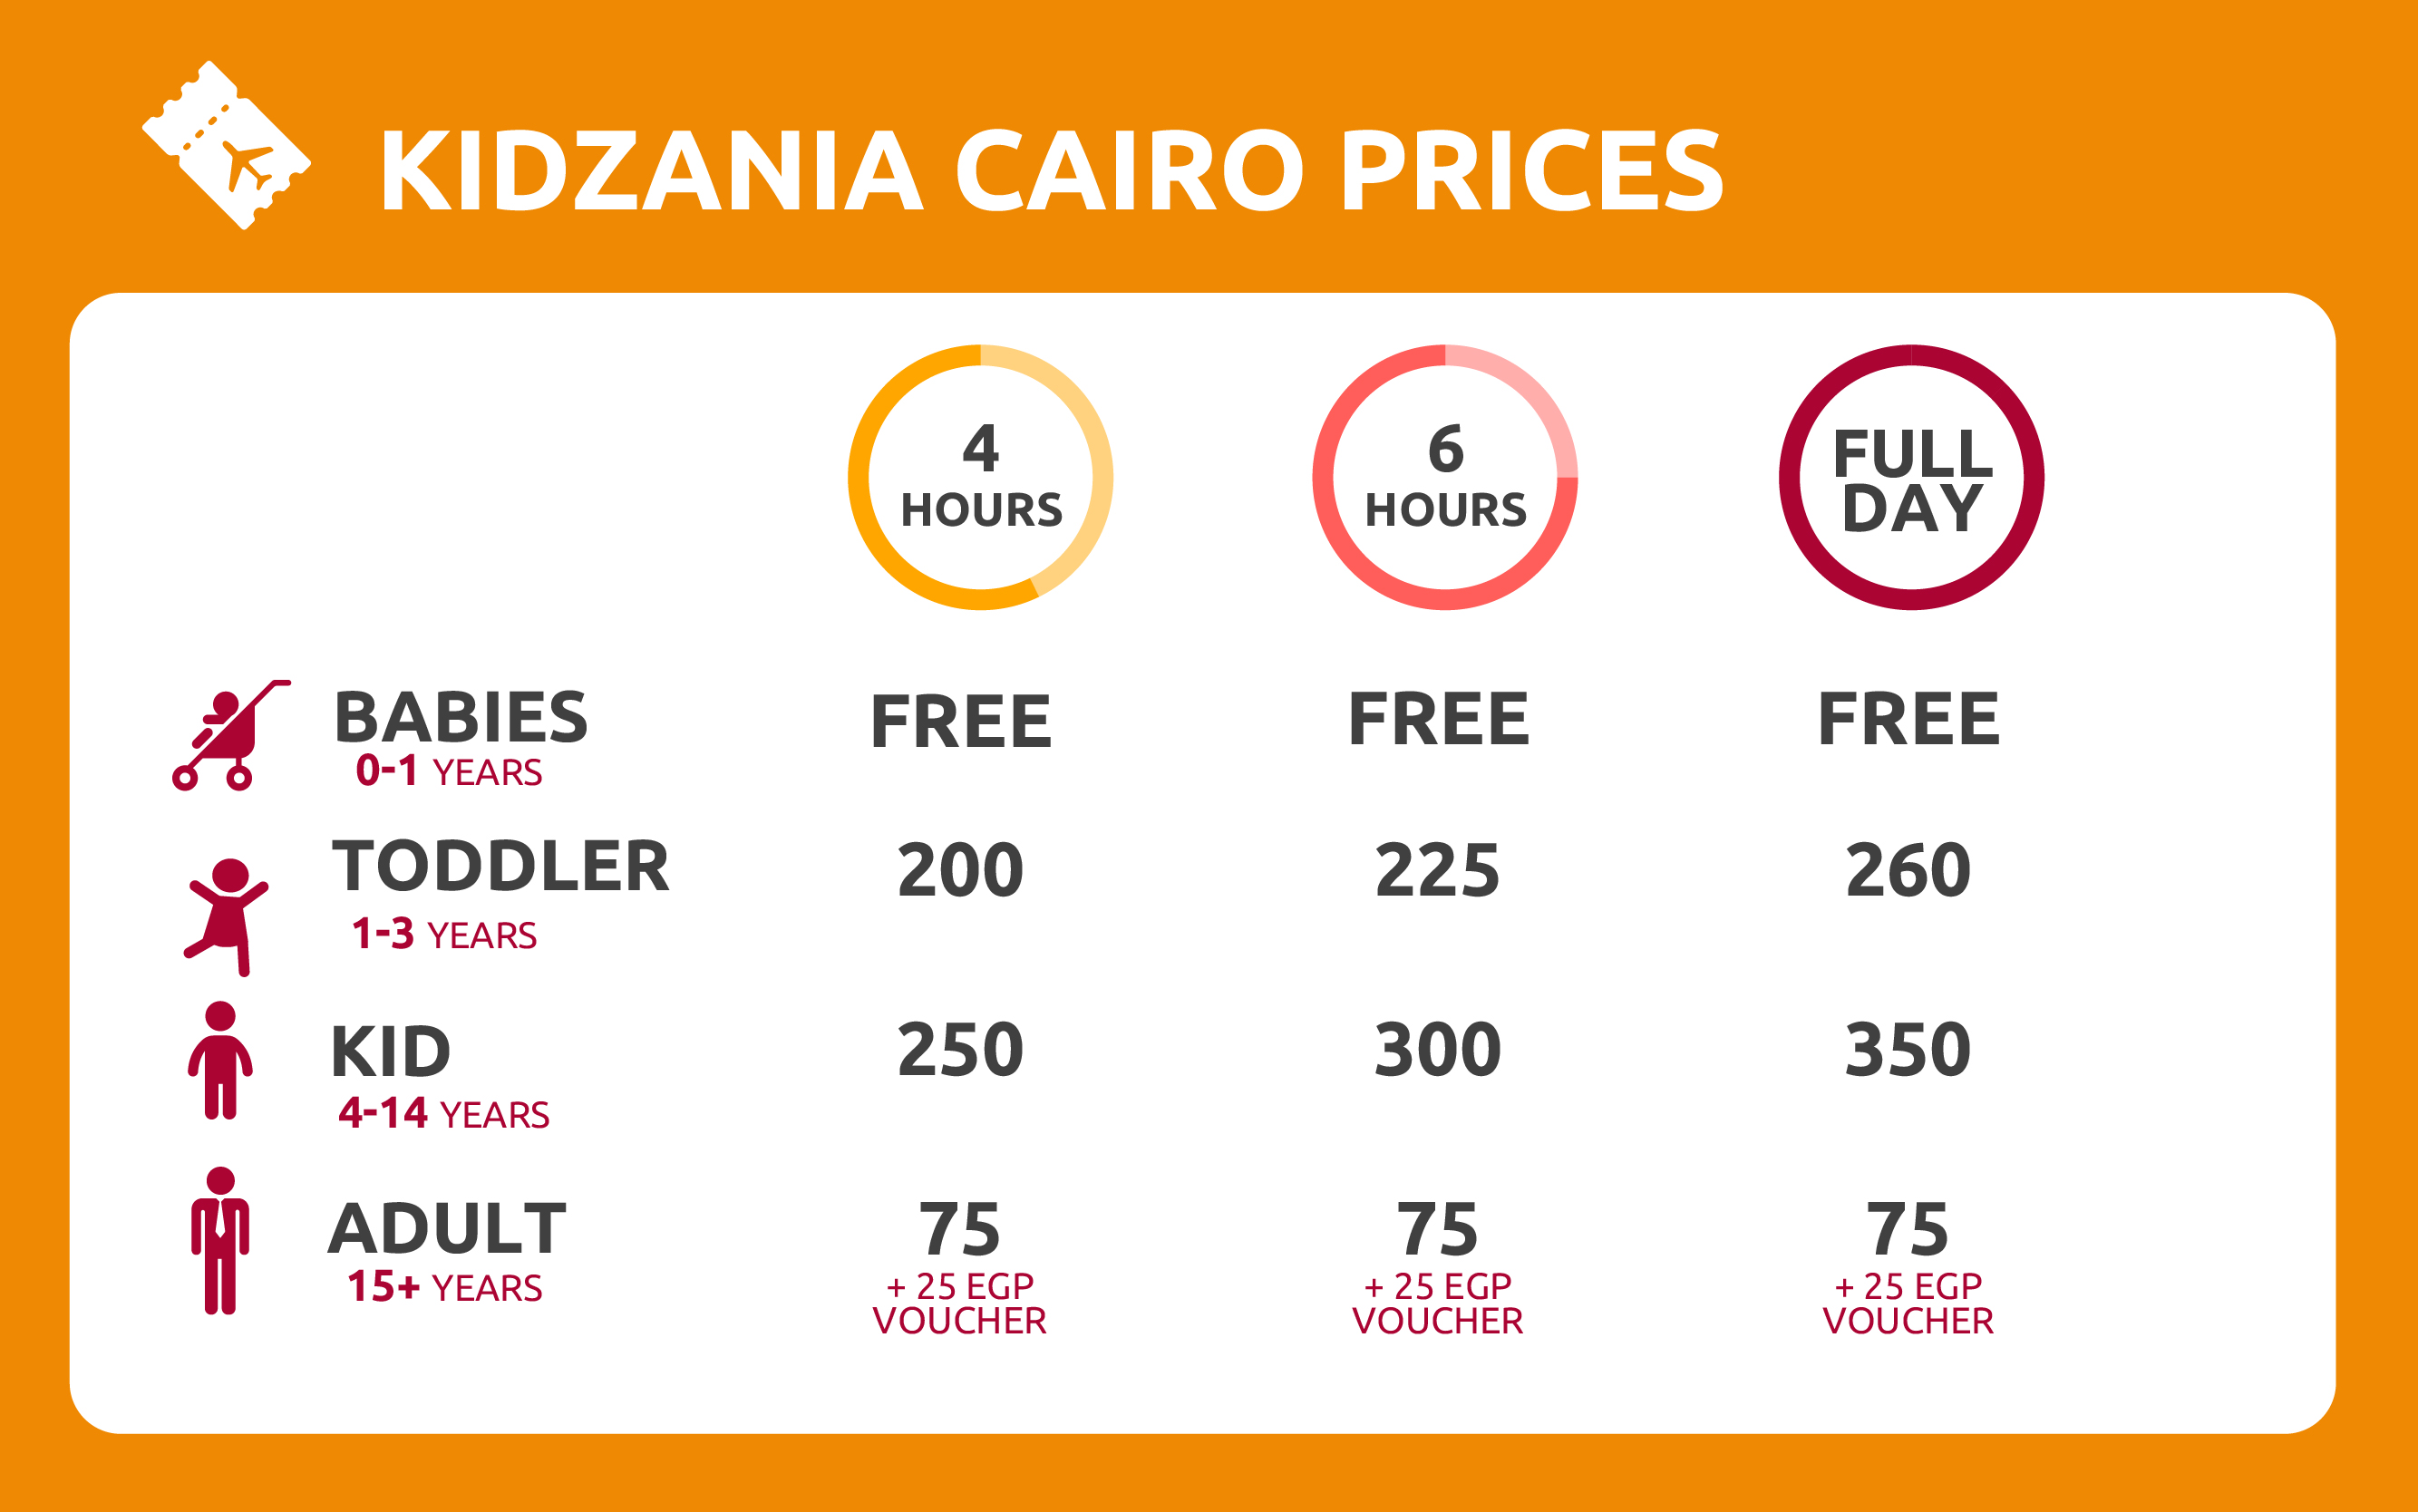 KidZania Cairo Prices